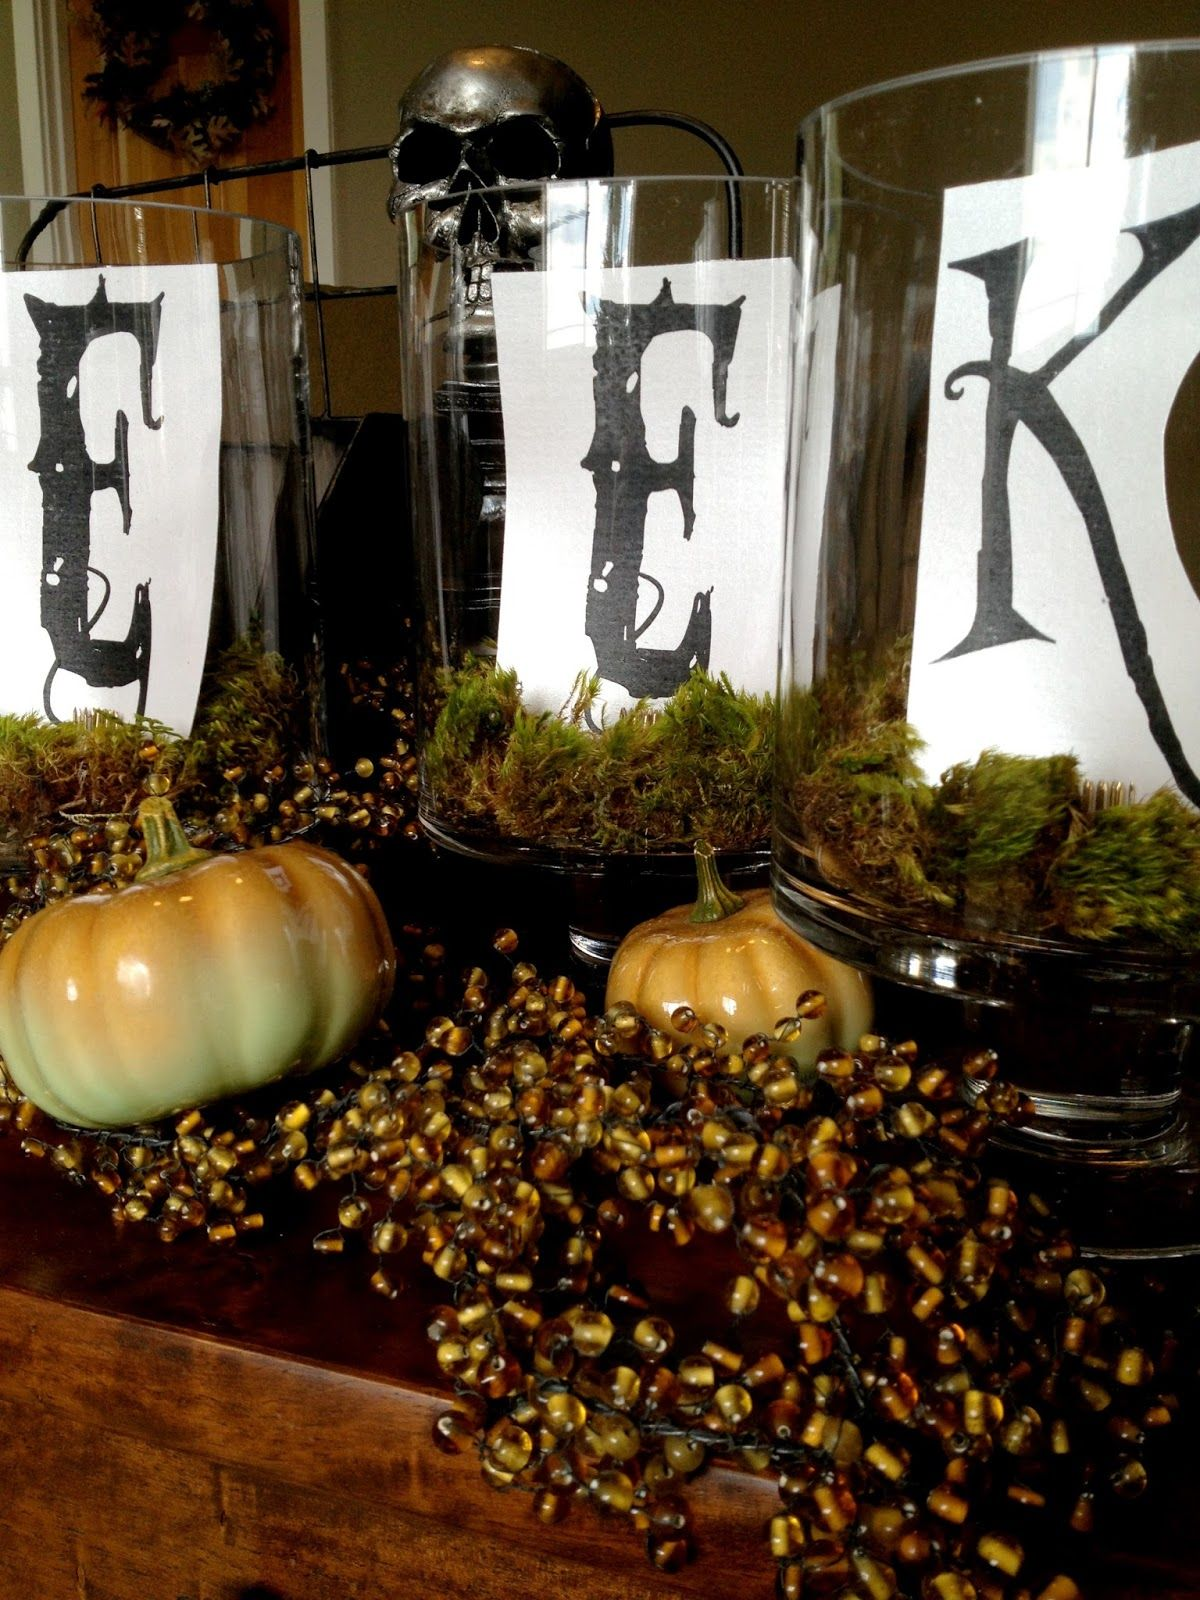 DIY simple Halloween decor - containing the eek! in glass hurricanes - Inexpensive Halloween Decorations